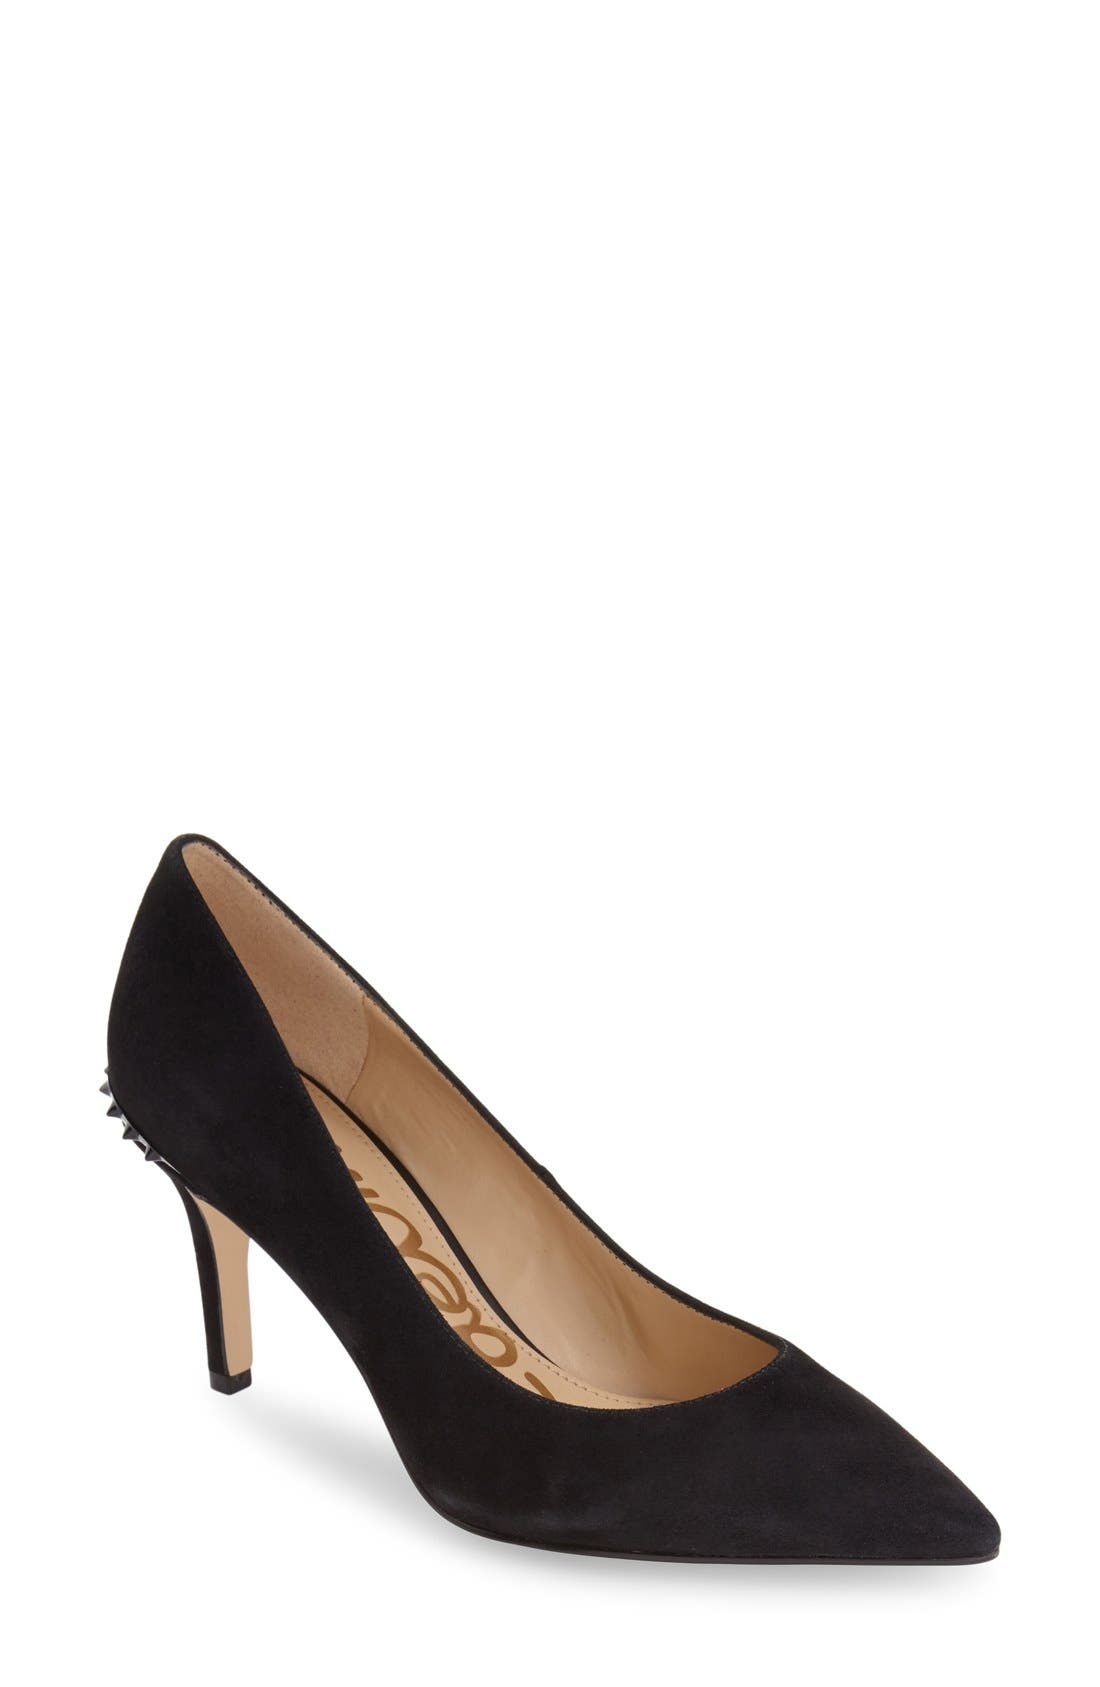 'Tonia' Spike Rand Pointy Toe Pump,                             Main thumbnail 1, color,                             004